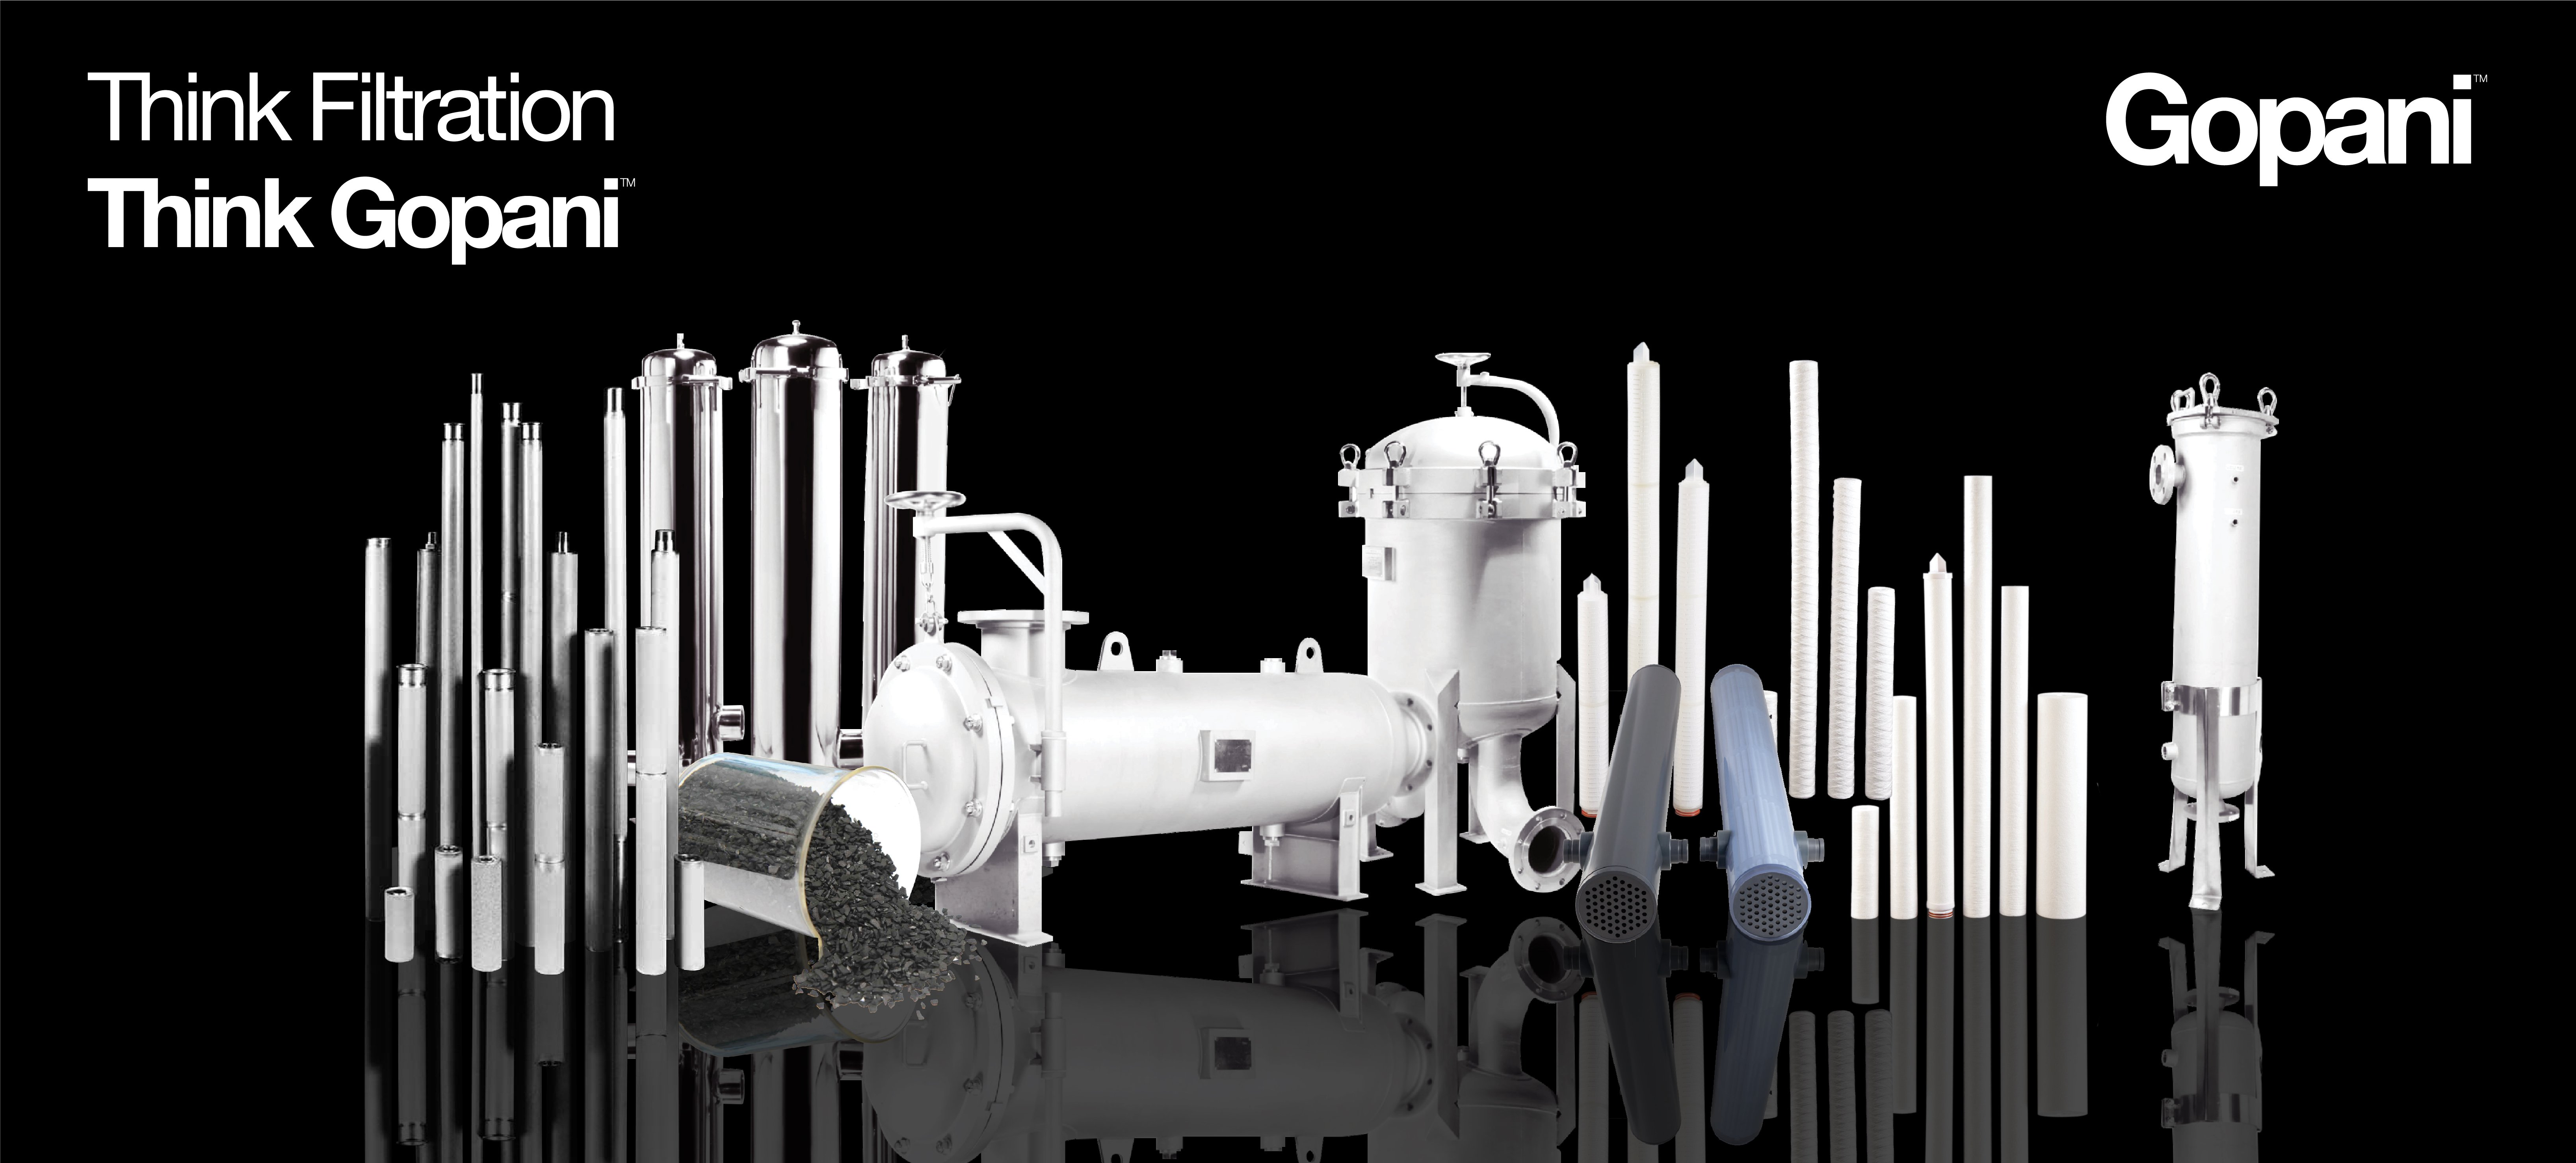 Choose Products that Gopani Product Systems help you Solve Problems & Save Costs